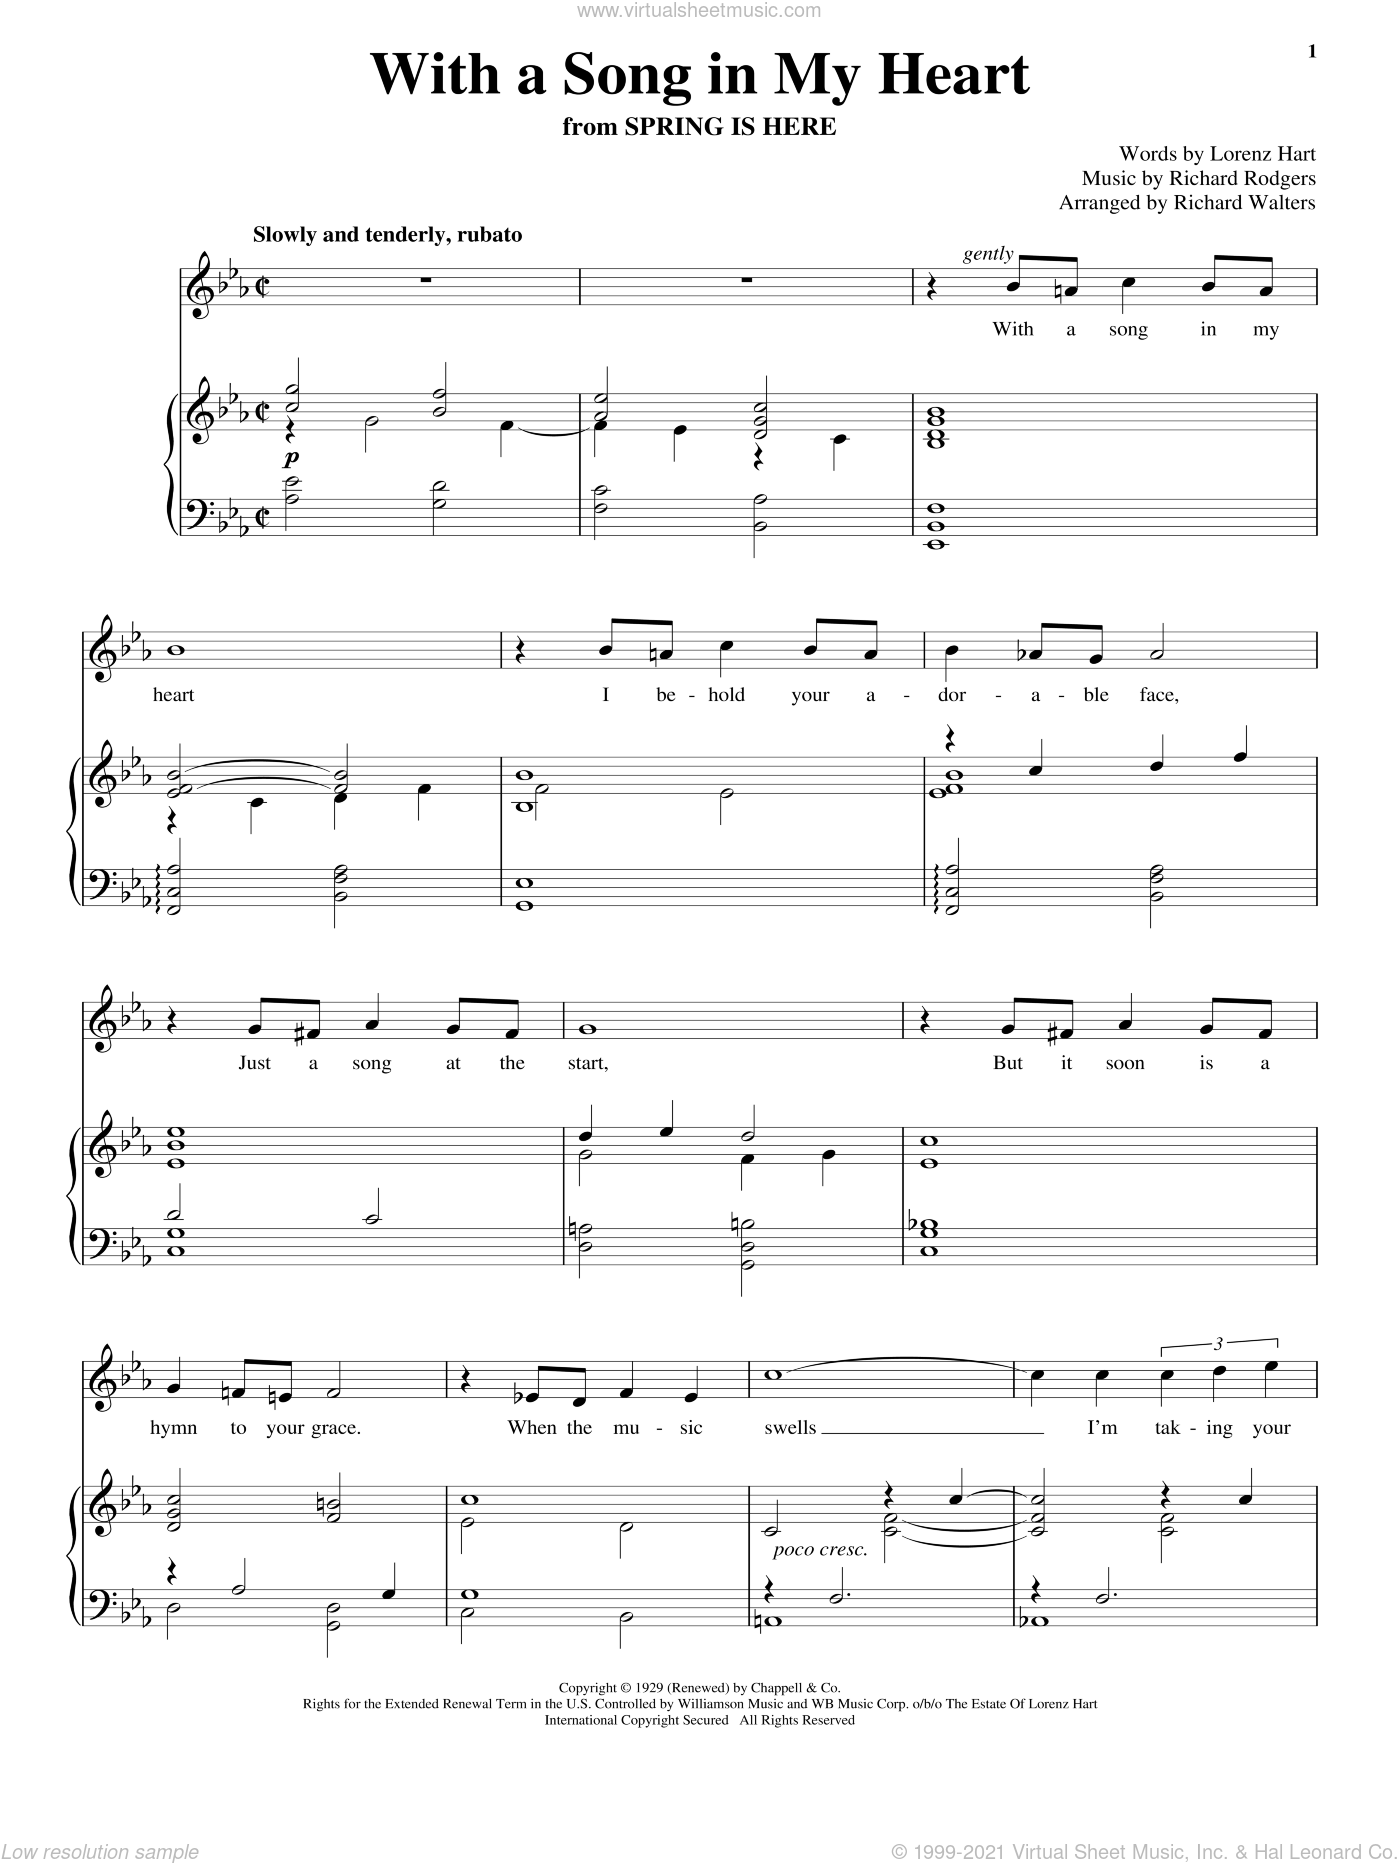 With A Song In My Heart sheet music for voice and piano by Rodgers & Hart, Lorenz Hart and Richard Rodgers, intermediate